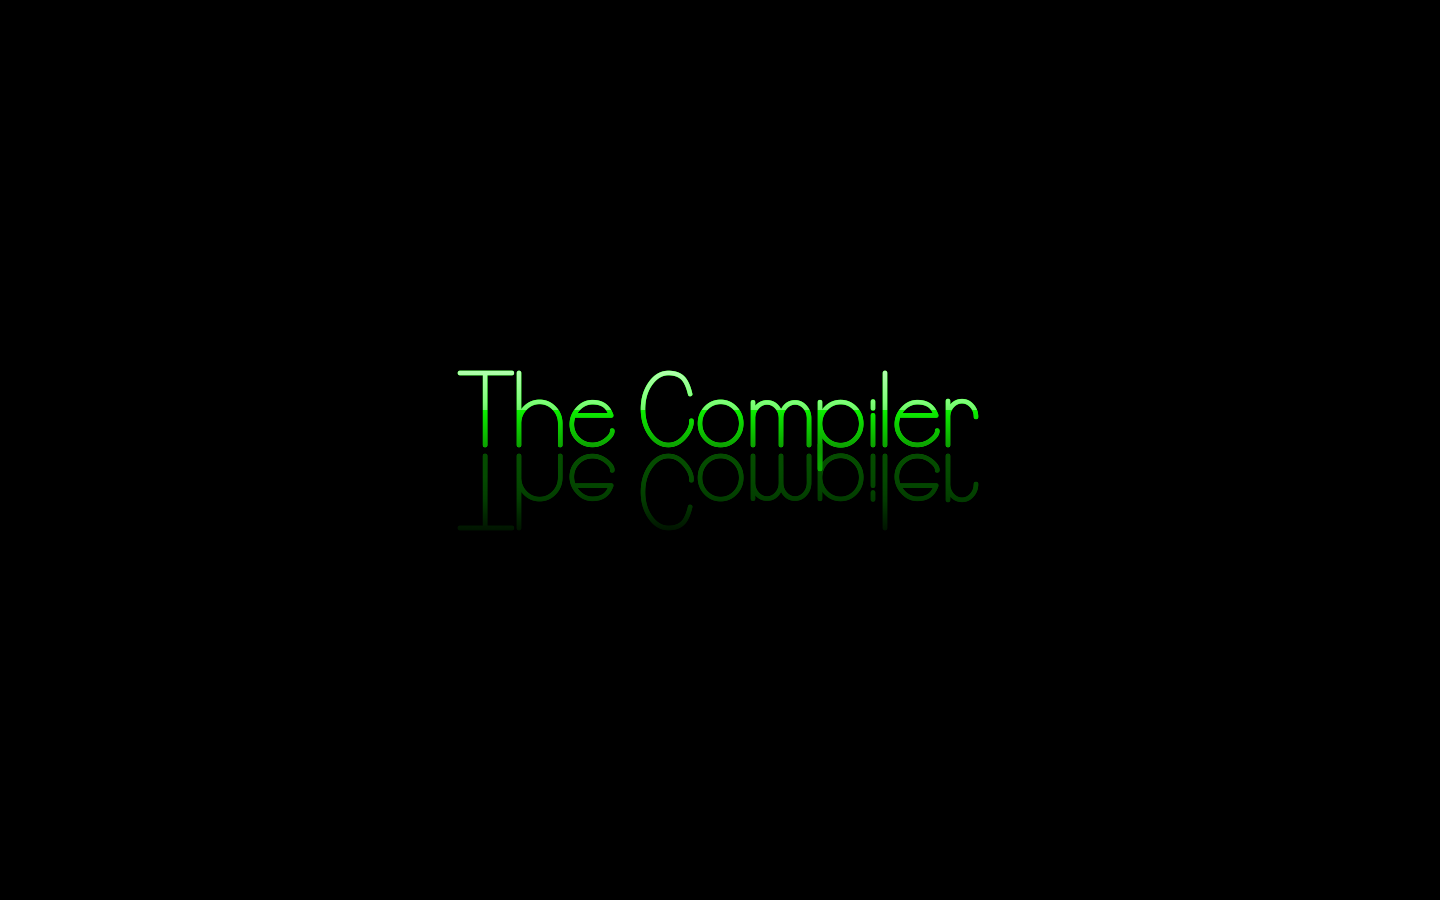 Programmers And Coders Wallpapers HD by PCbots ~ PCbots Labs (Blog)